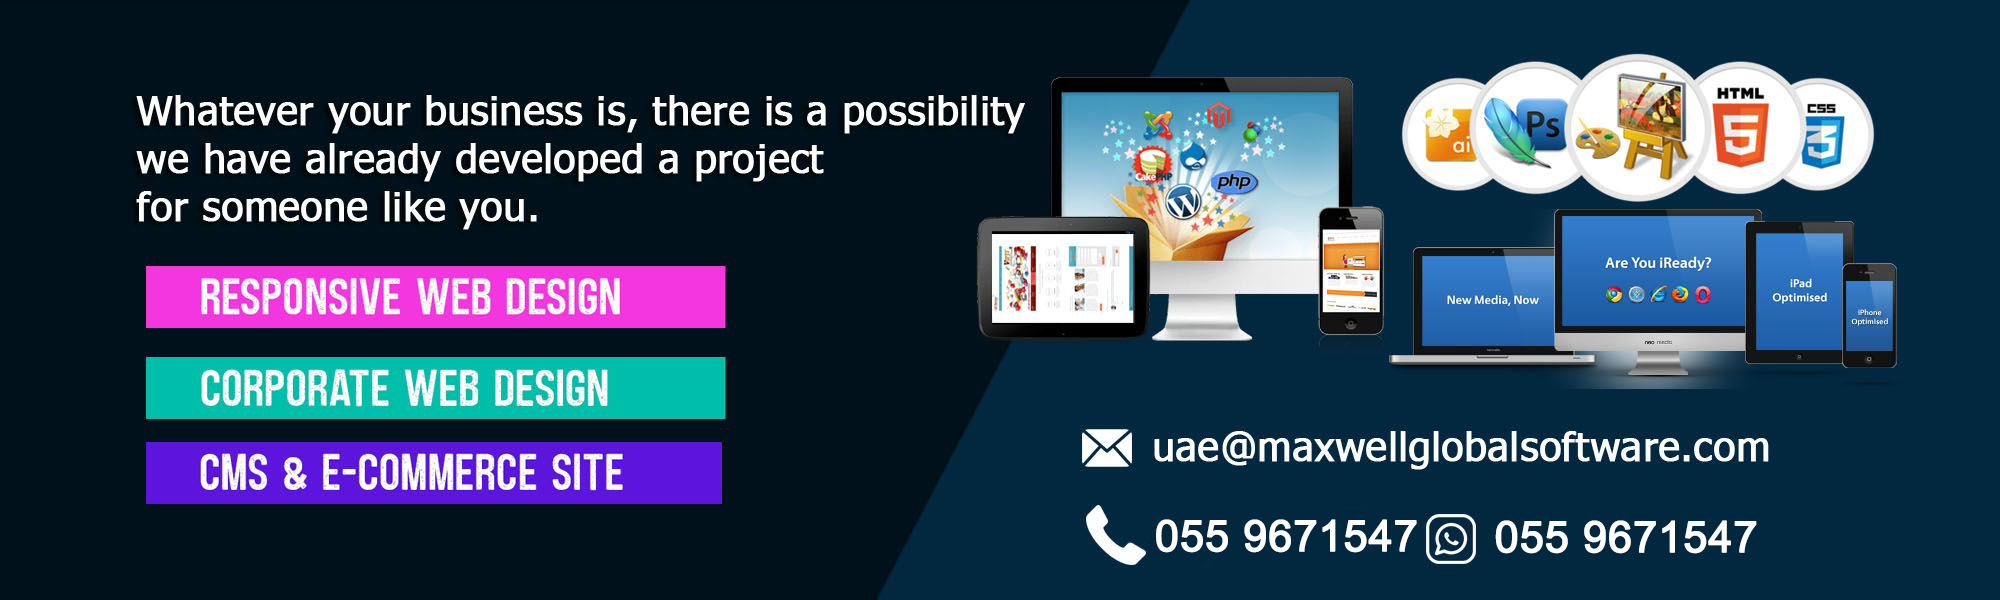 Best Web Design Website Design Company In Dubai Sharjah Abu Dhabi Uae